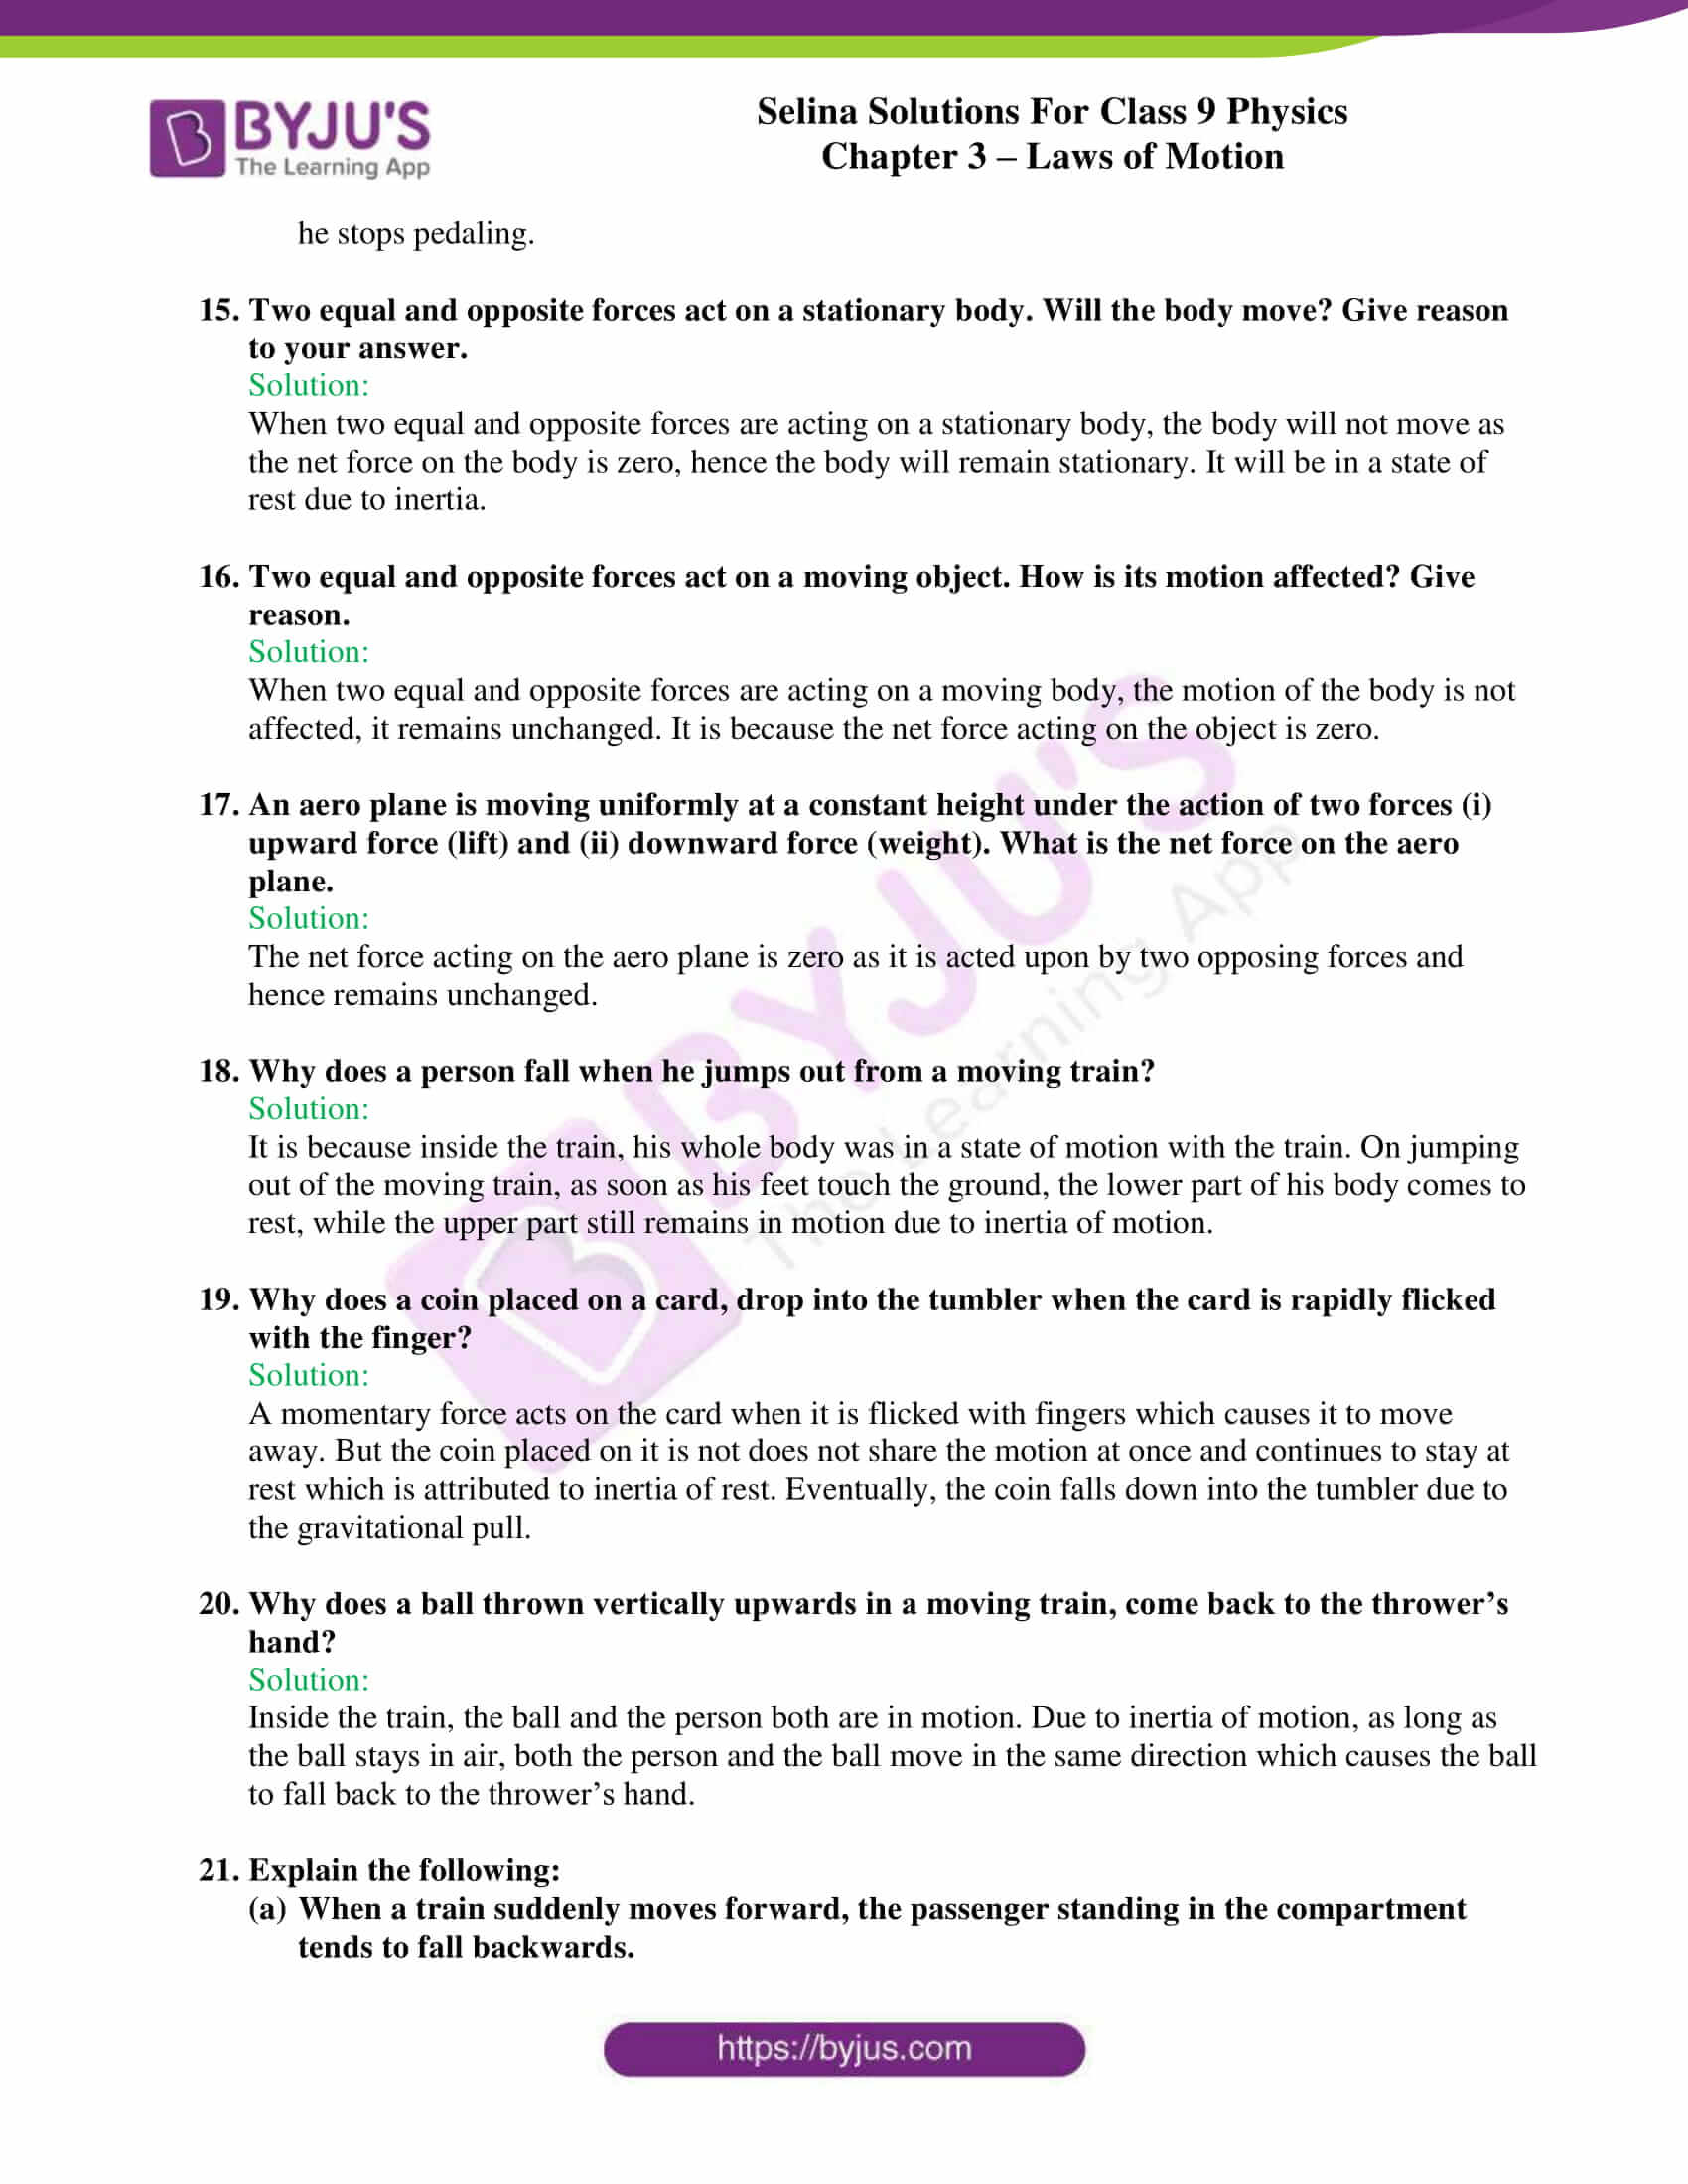 selina solutions class 9 physics chapter 3 Laws of Motion part 07